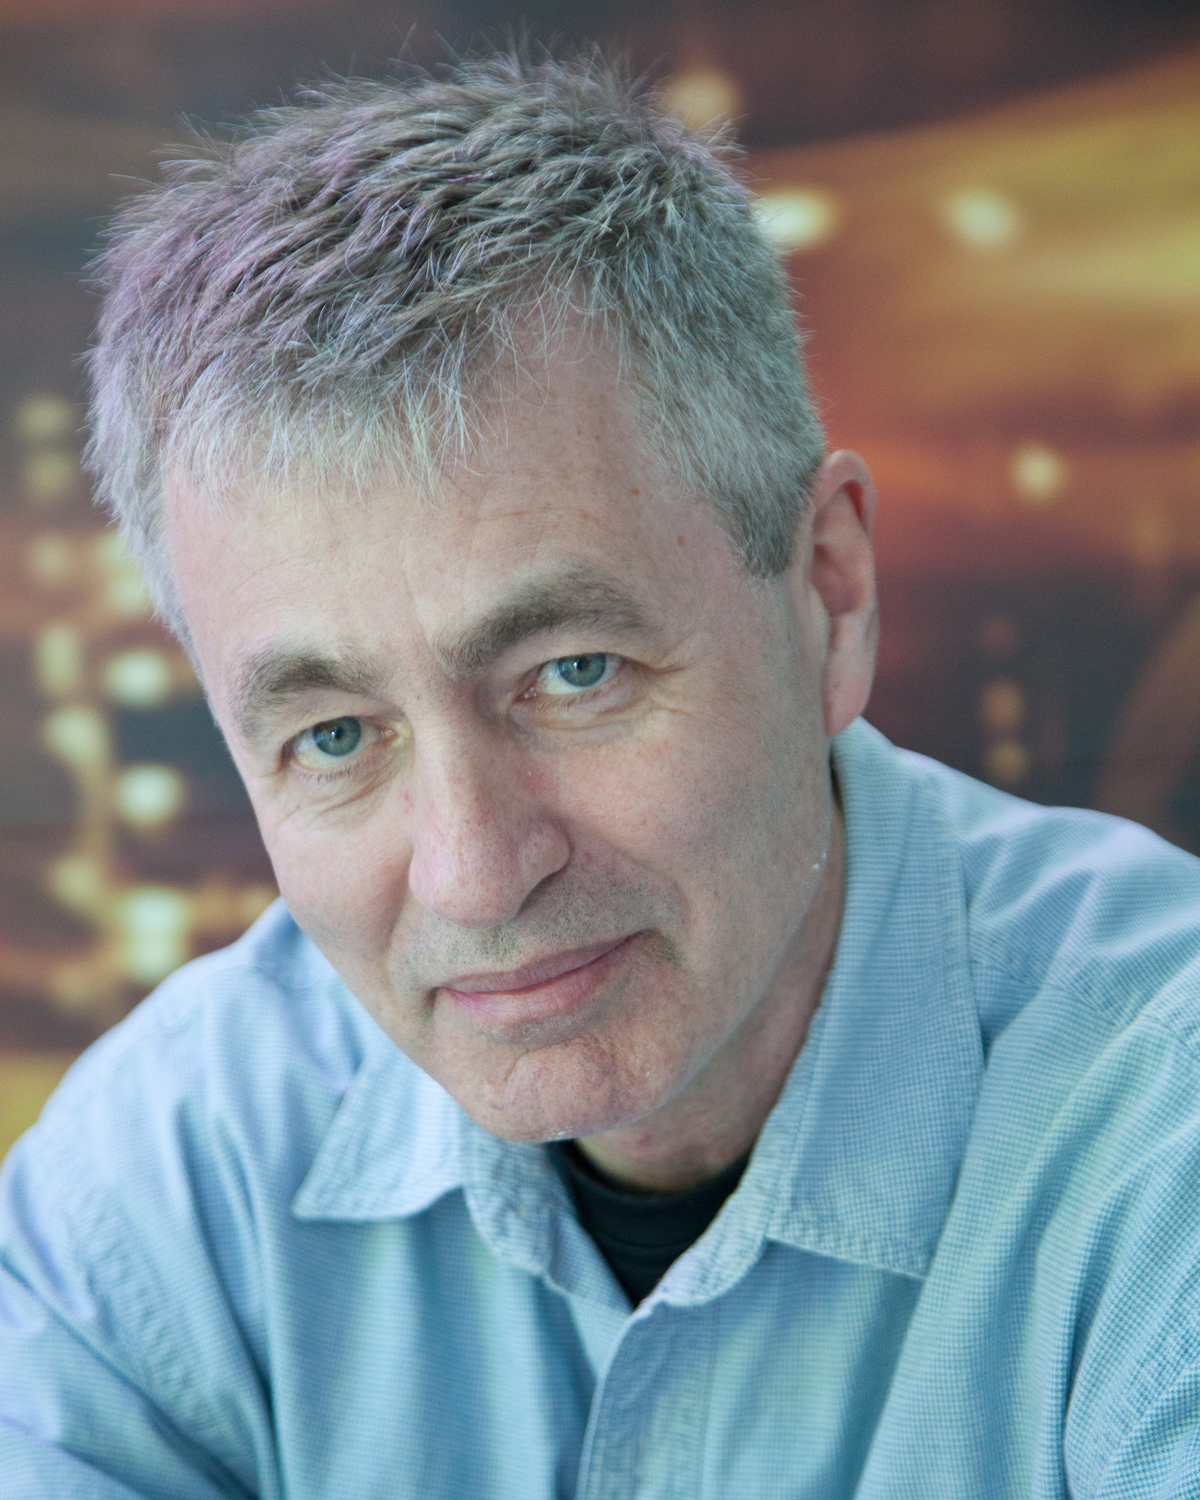 <b>Steve James</b> - stevejames